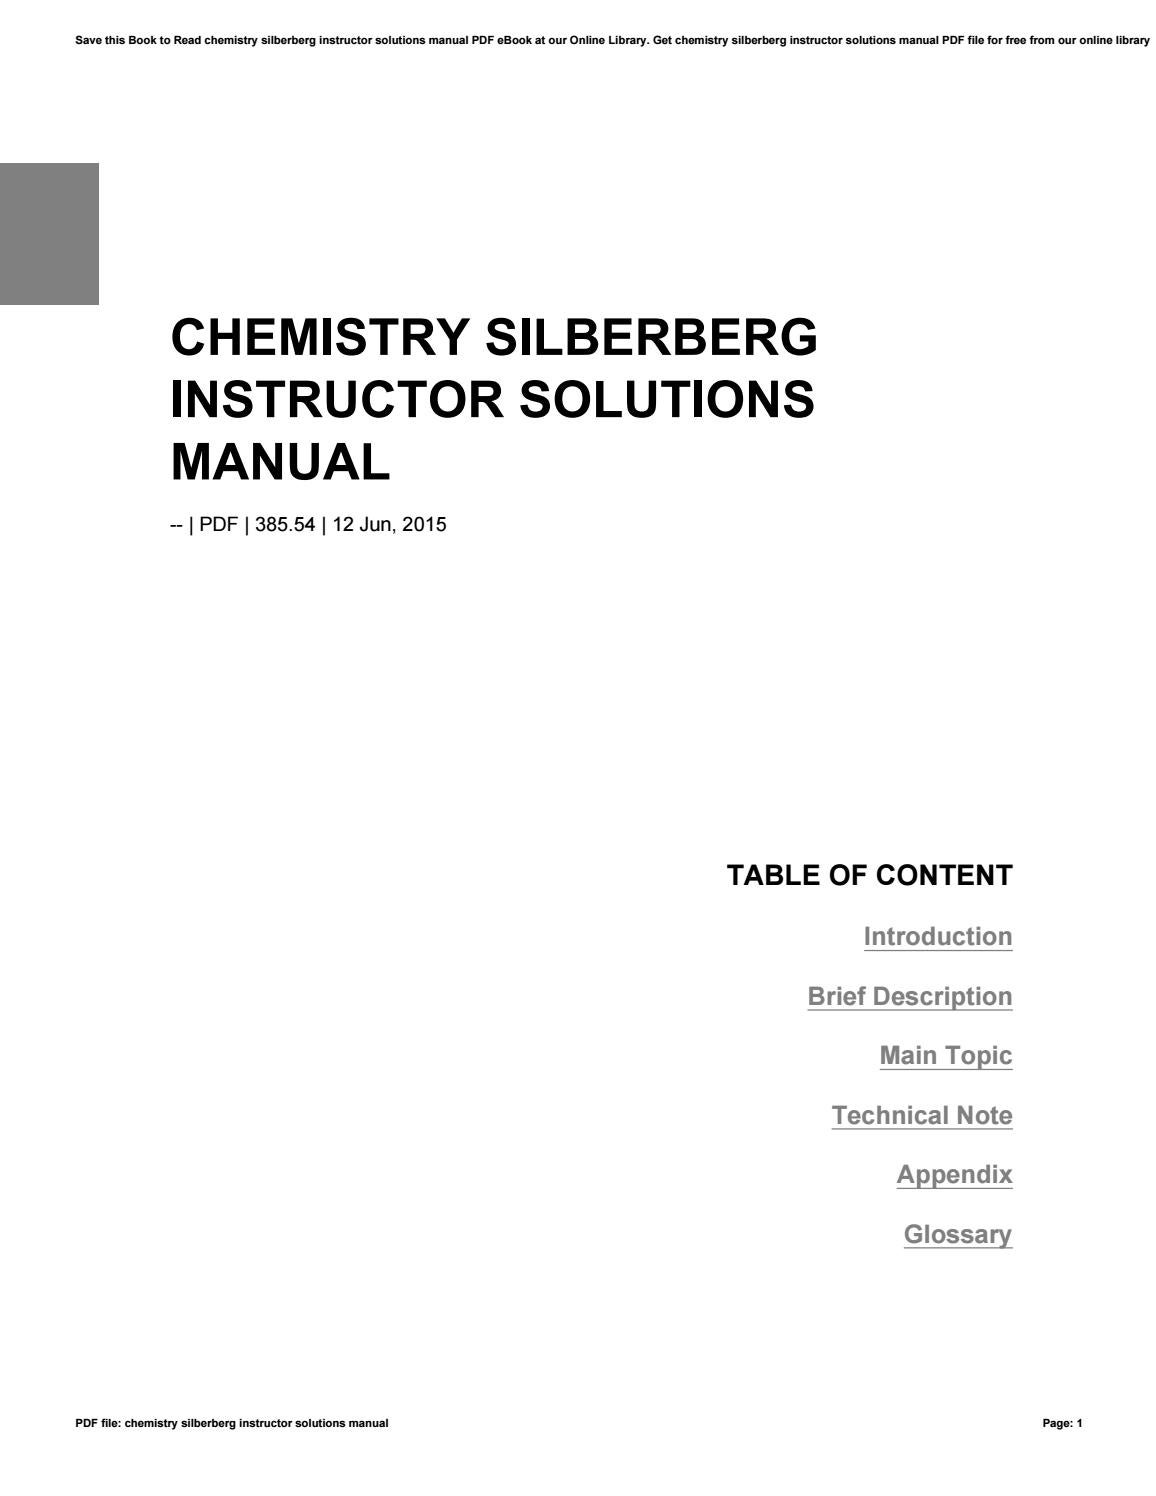 Instructor solution manuals ebook solution manual 8051 microcontroller 4th edition scott mackenzie array chemistry silberberg instructor solutions manual by j7941 issuu rh issuu fandeluxe Choice Image